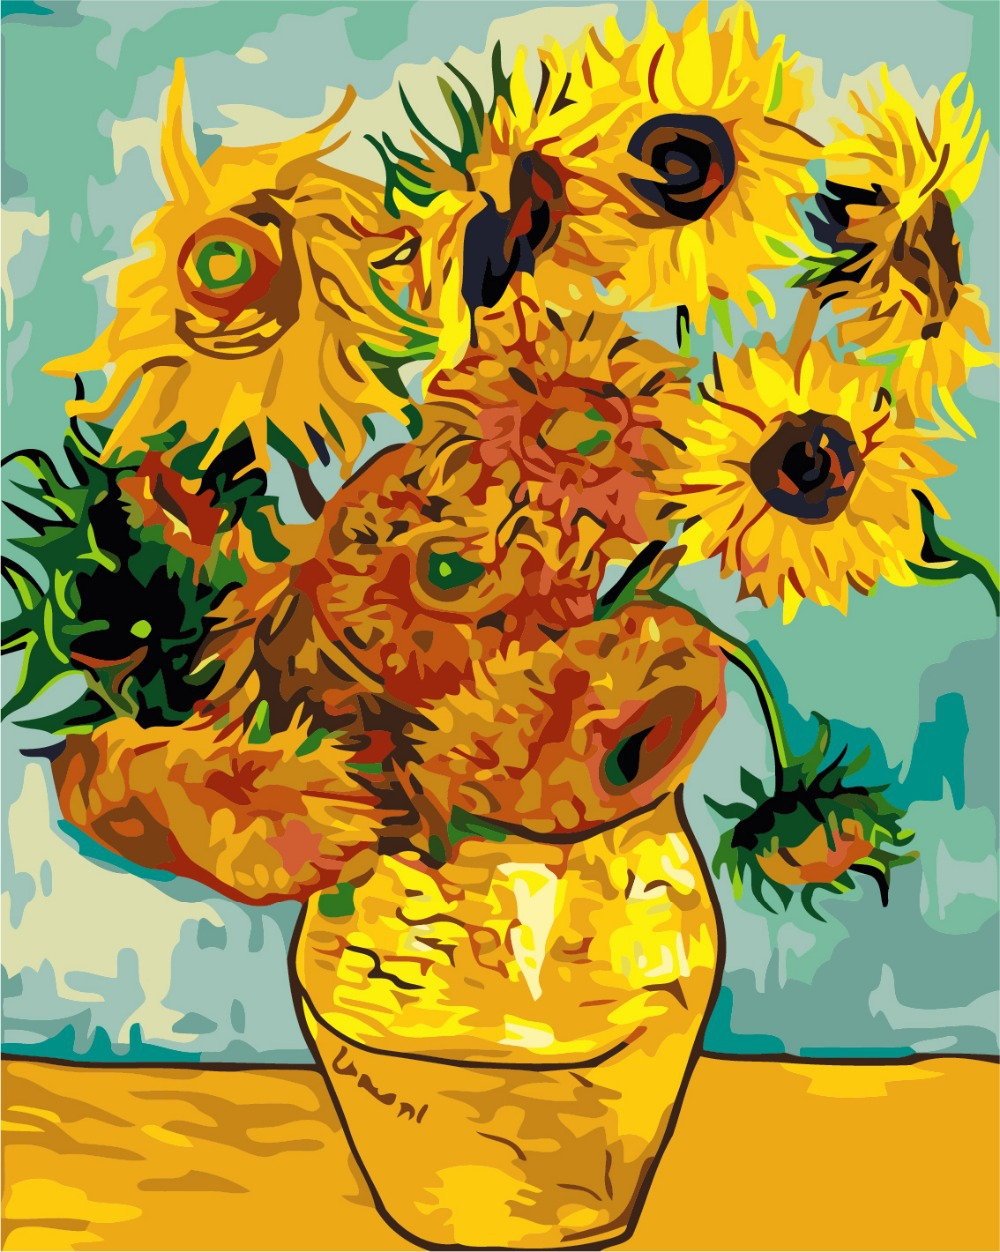 Vang Gogh Cuadros The Famous Modern Abstract Oil Painting Van Gogh Sun Flower